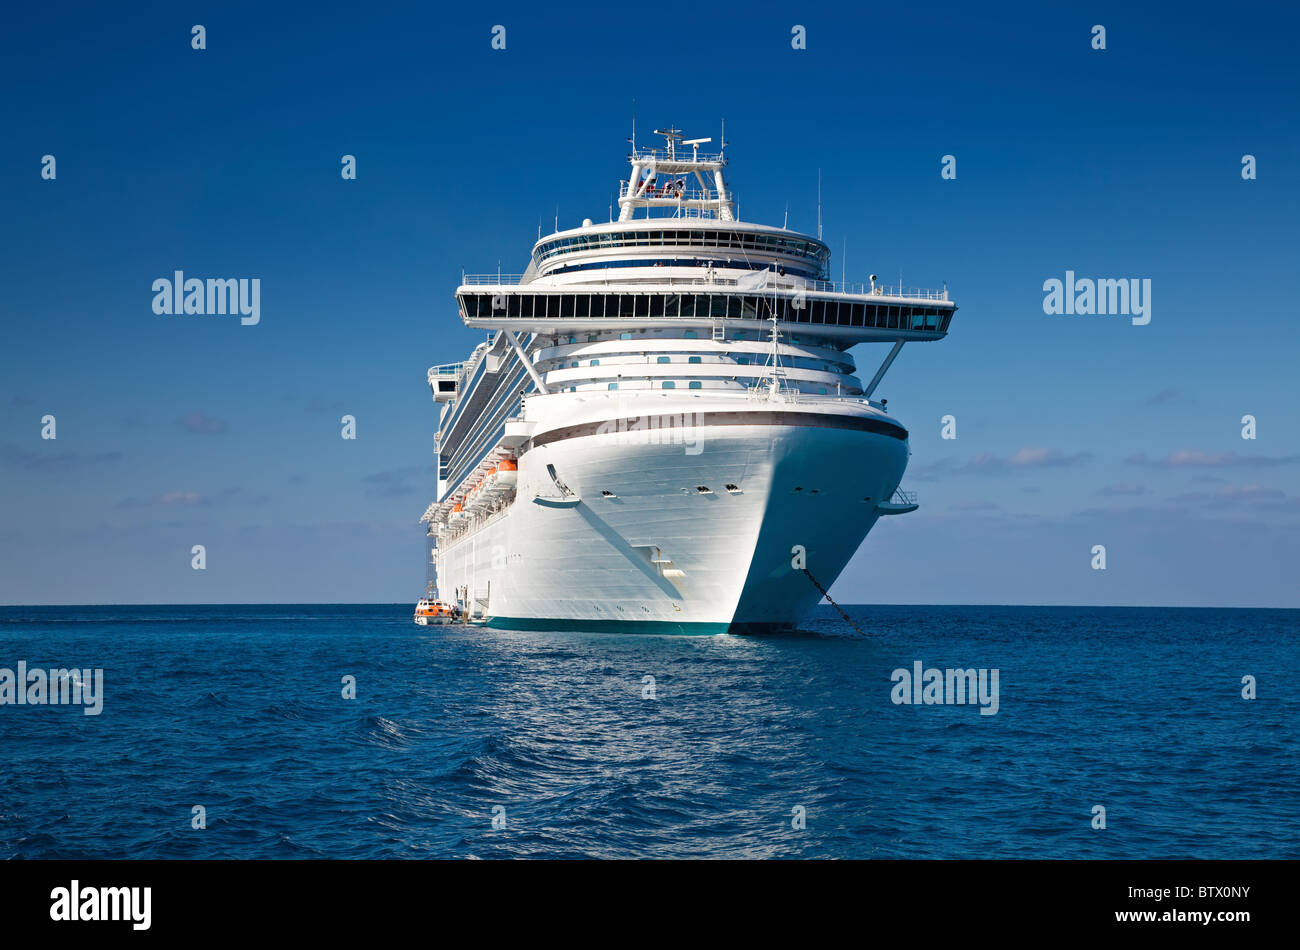 Cruise ship anchored in the Caribbean Sea - Stock Image